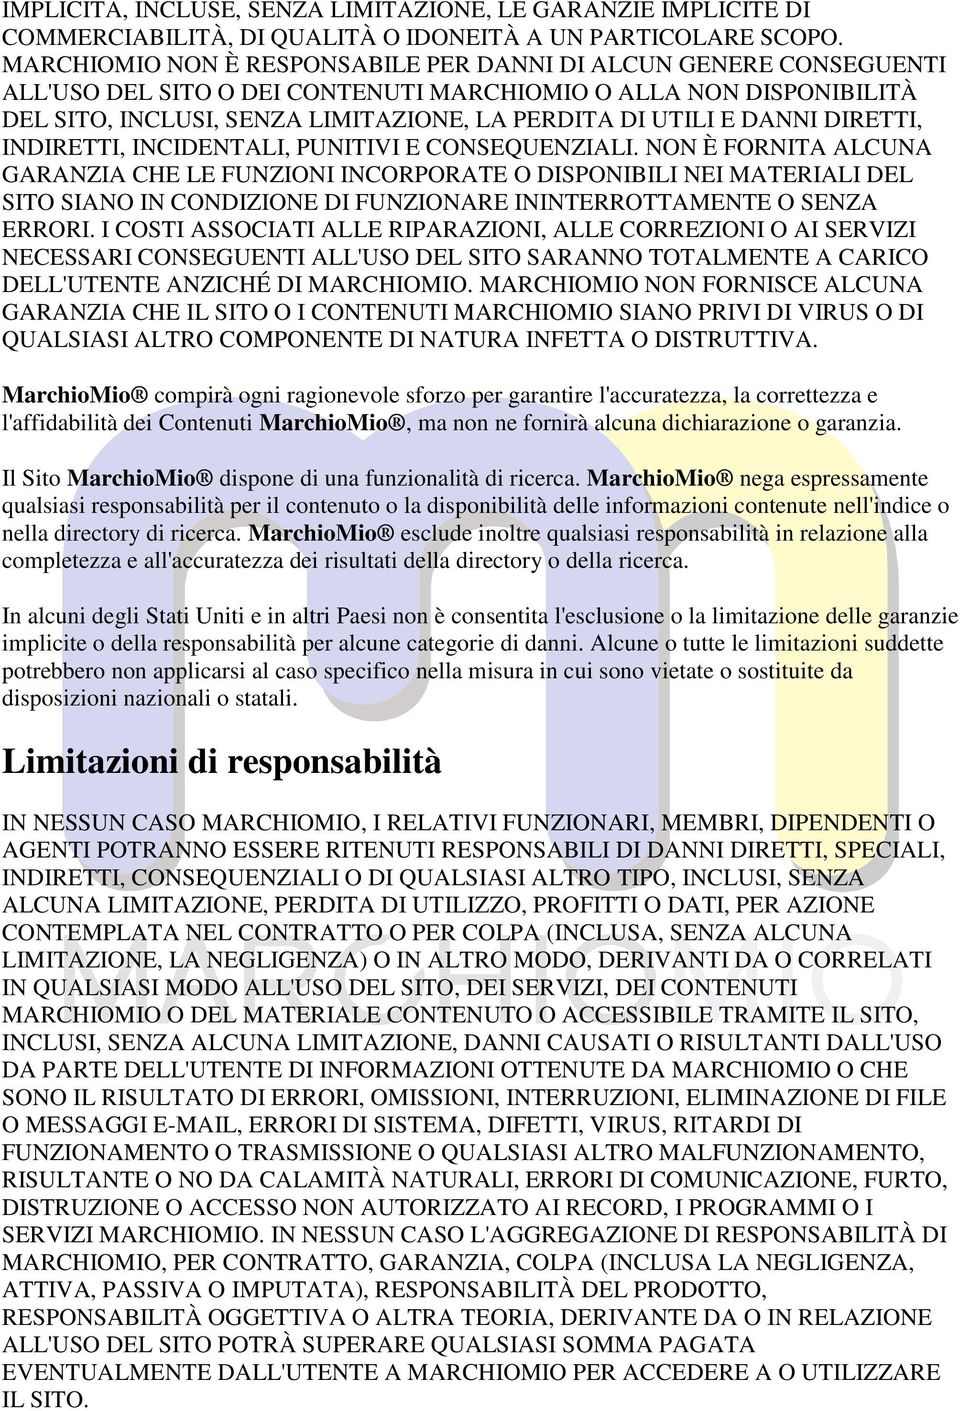 DANNI DIRETTI, INDIRETTI, INCIDENTALI, PUNITIVI E CONSEQUENZIALI.